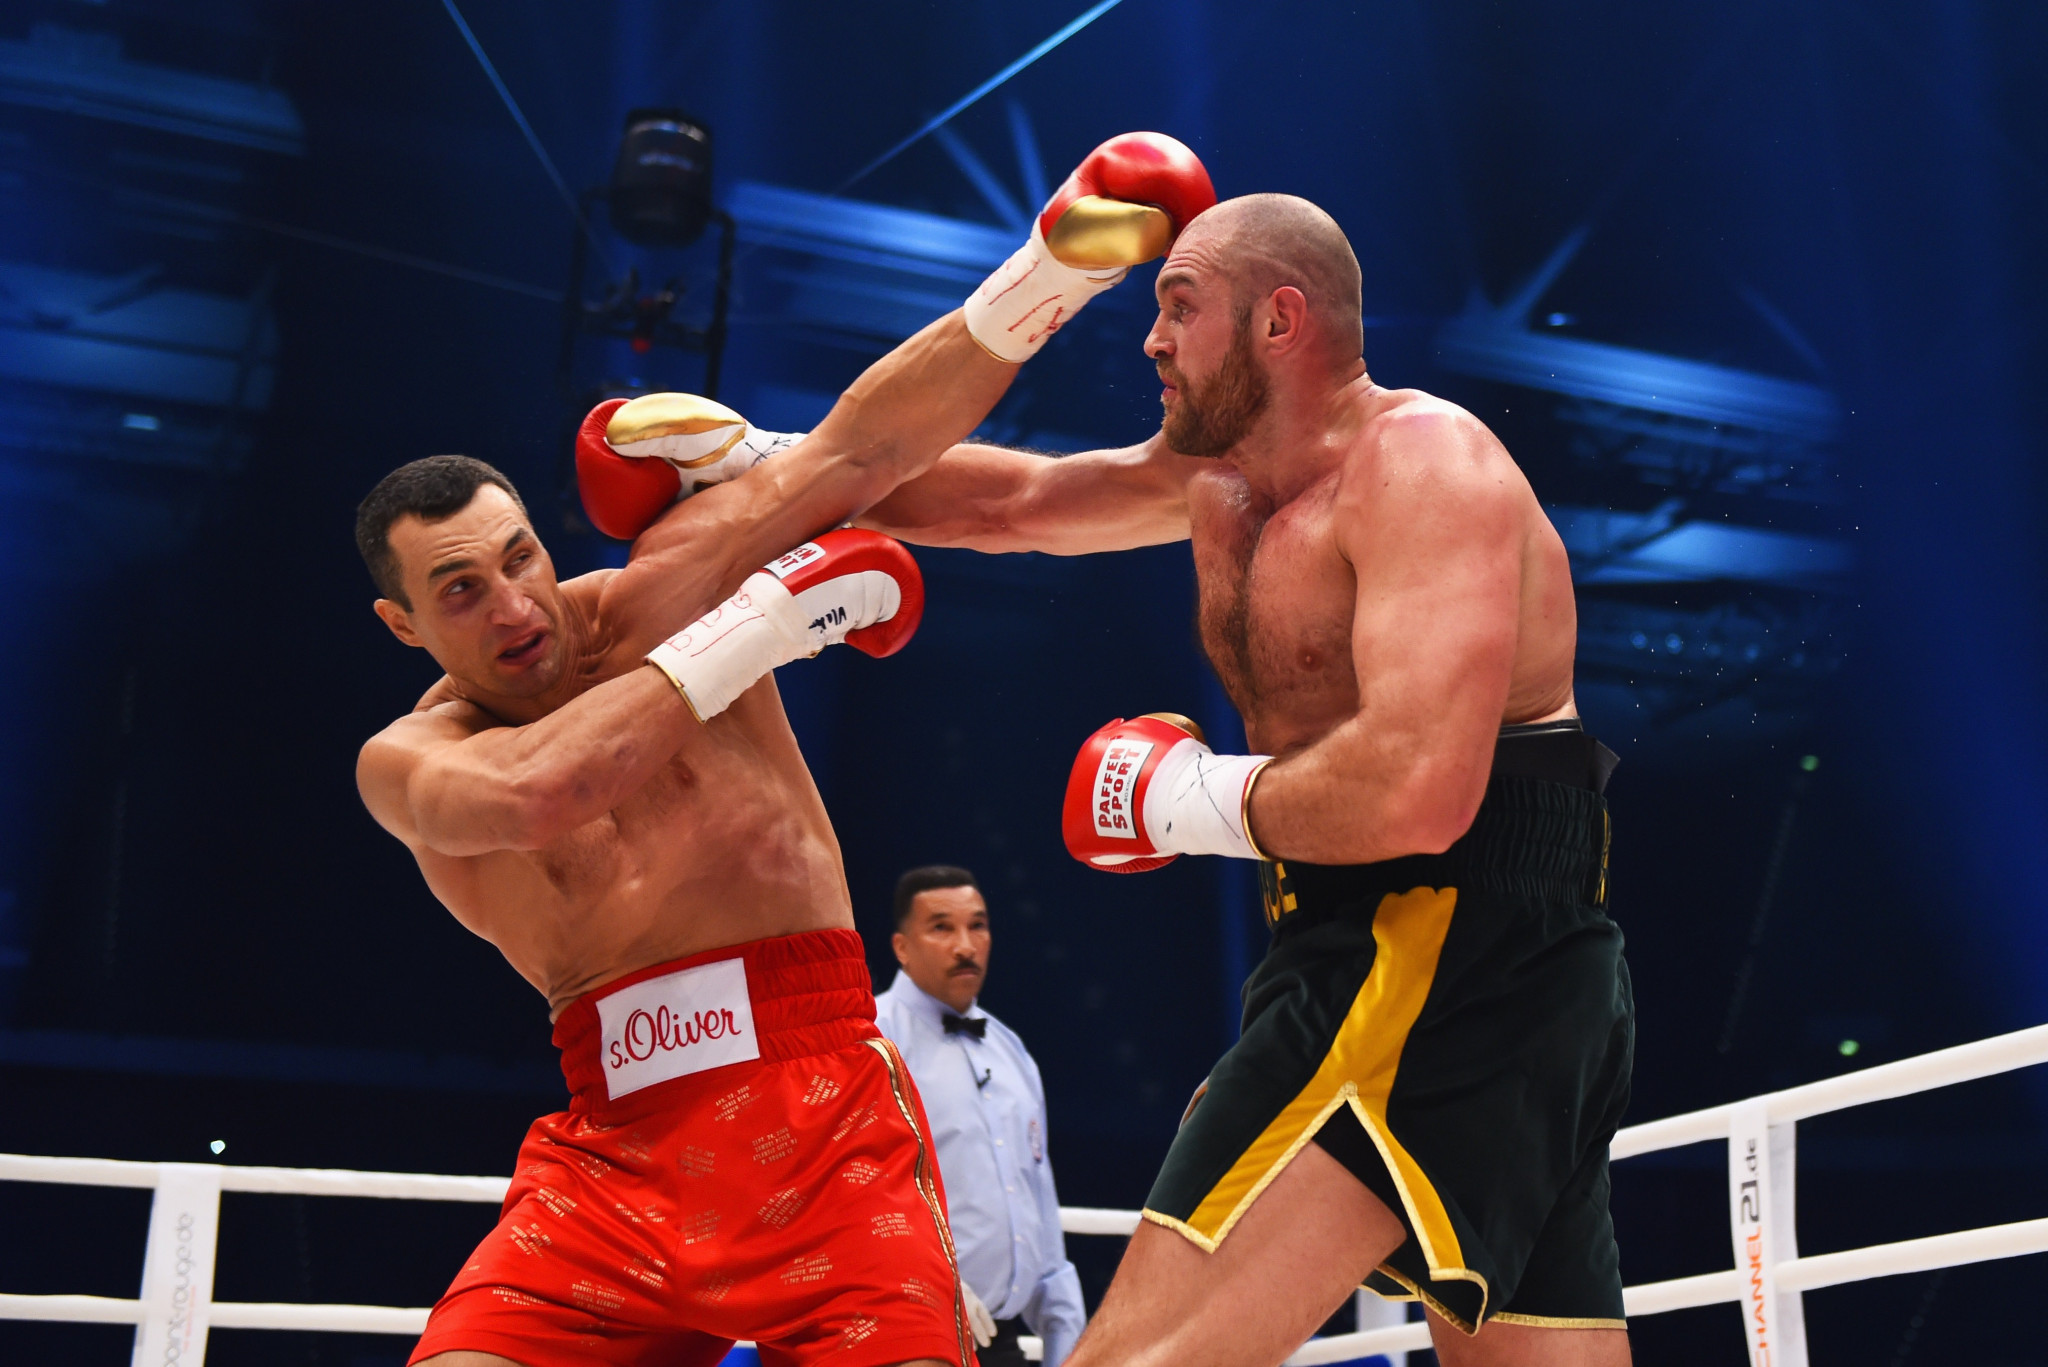 Tyson Fury has not fought since beating Wladimir Klitschko in a world title fight in November 2015 ©Getty Images